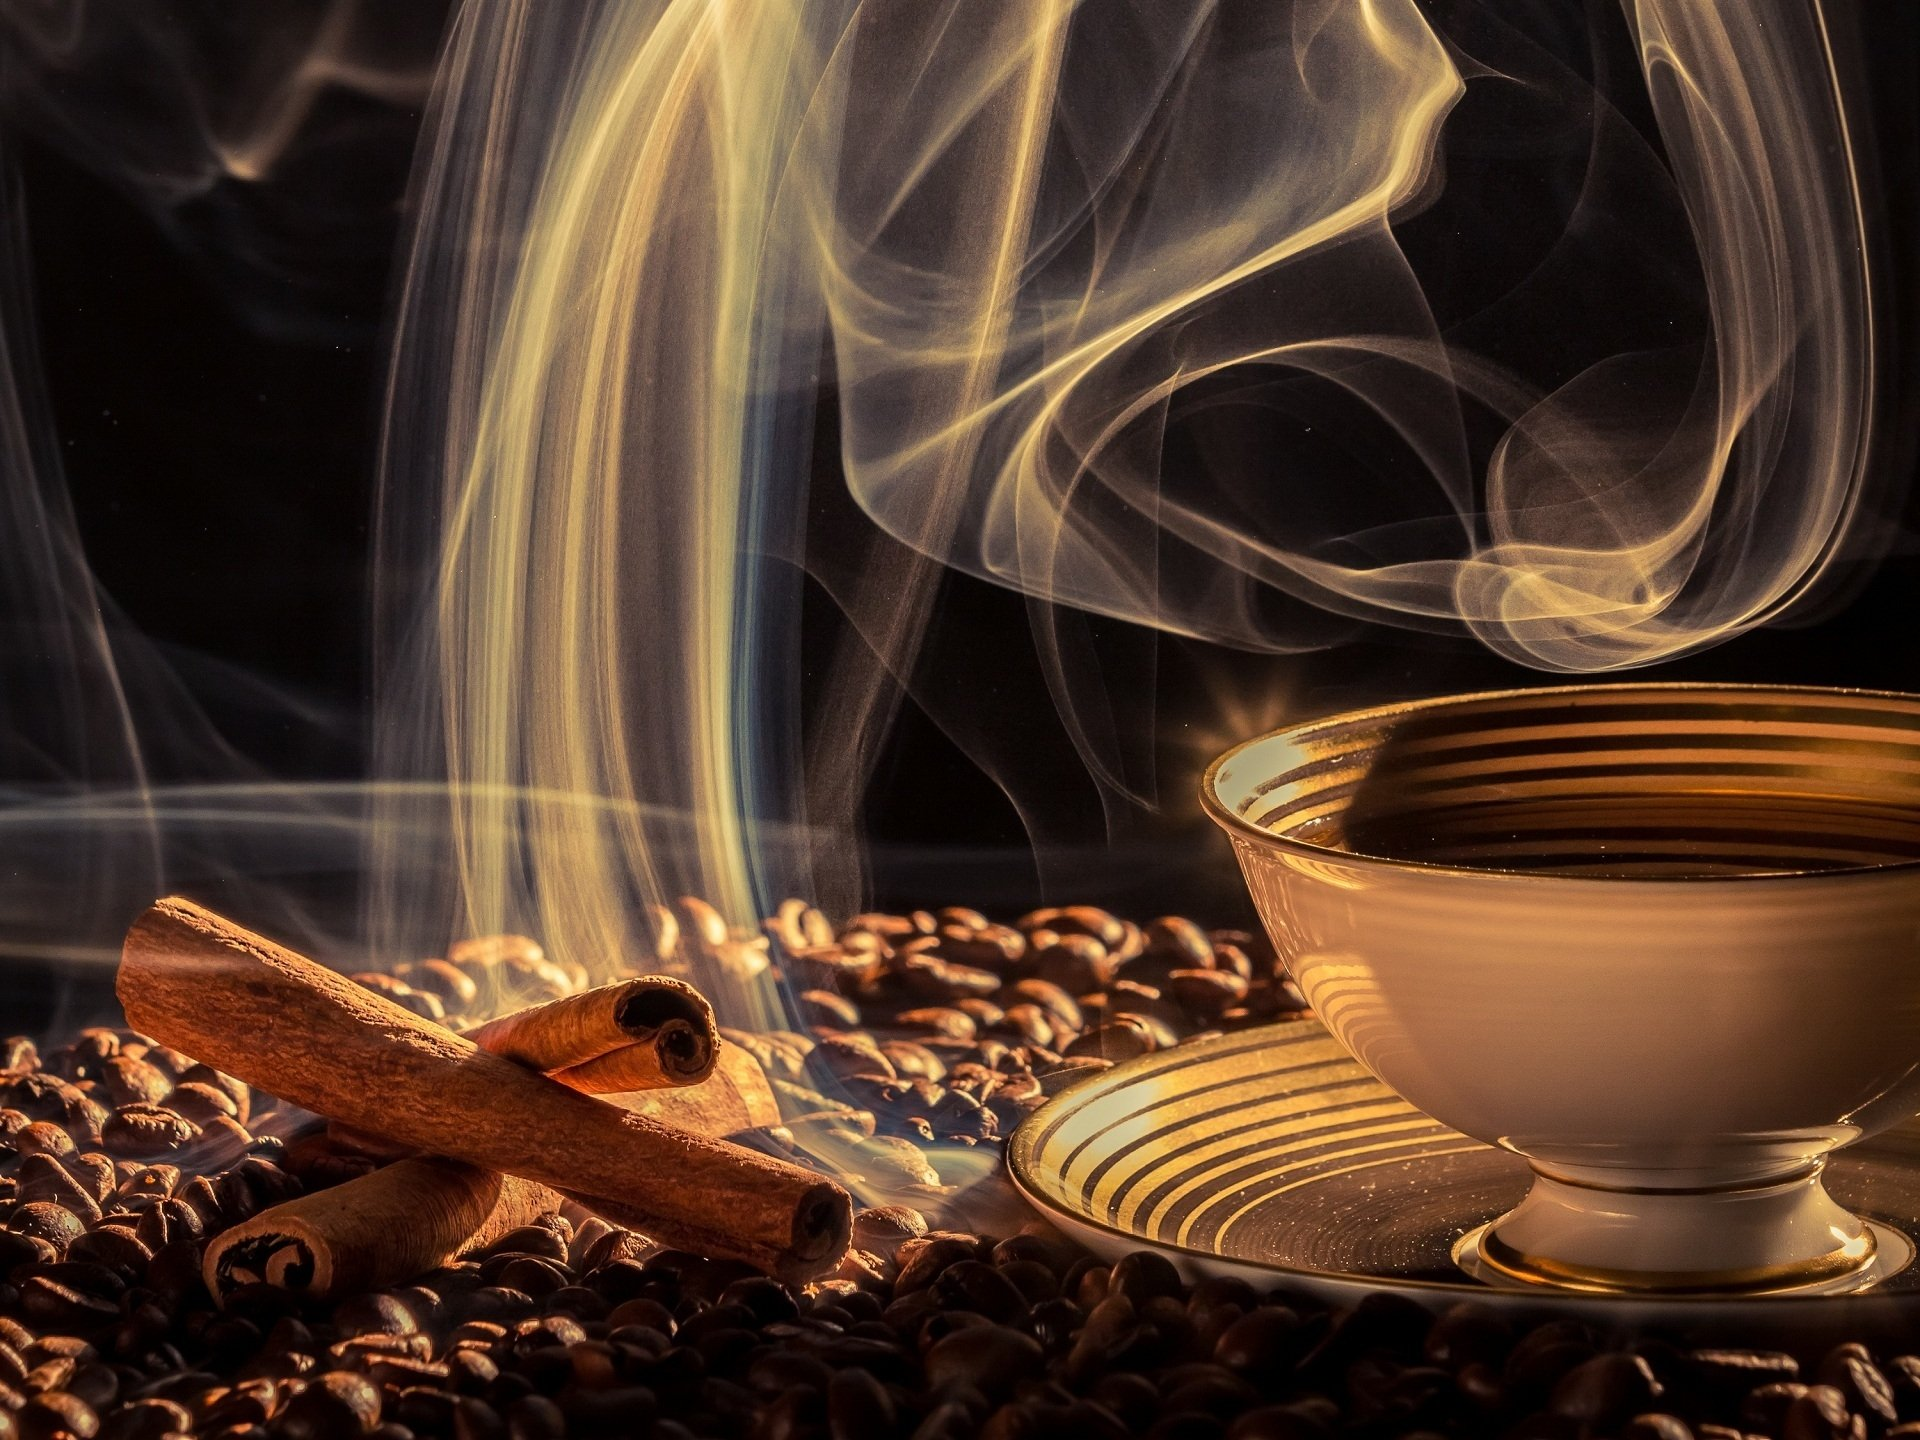 Food - Coffee  Drink Cinnamon Coffee Beans Cup Wallpaper